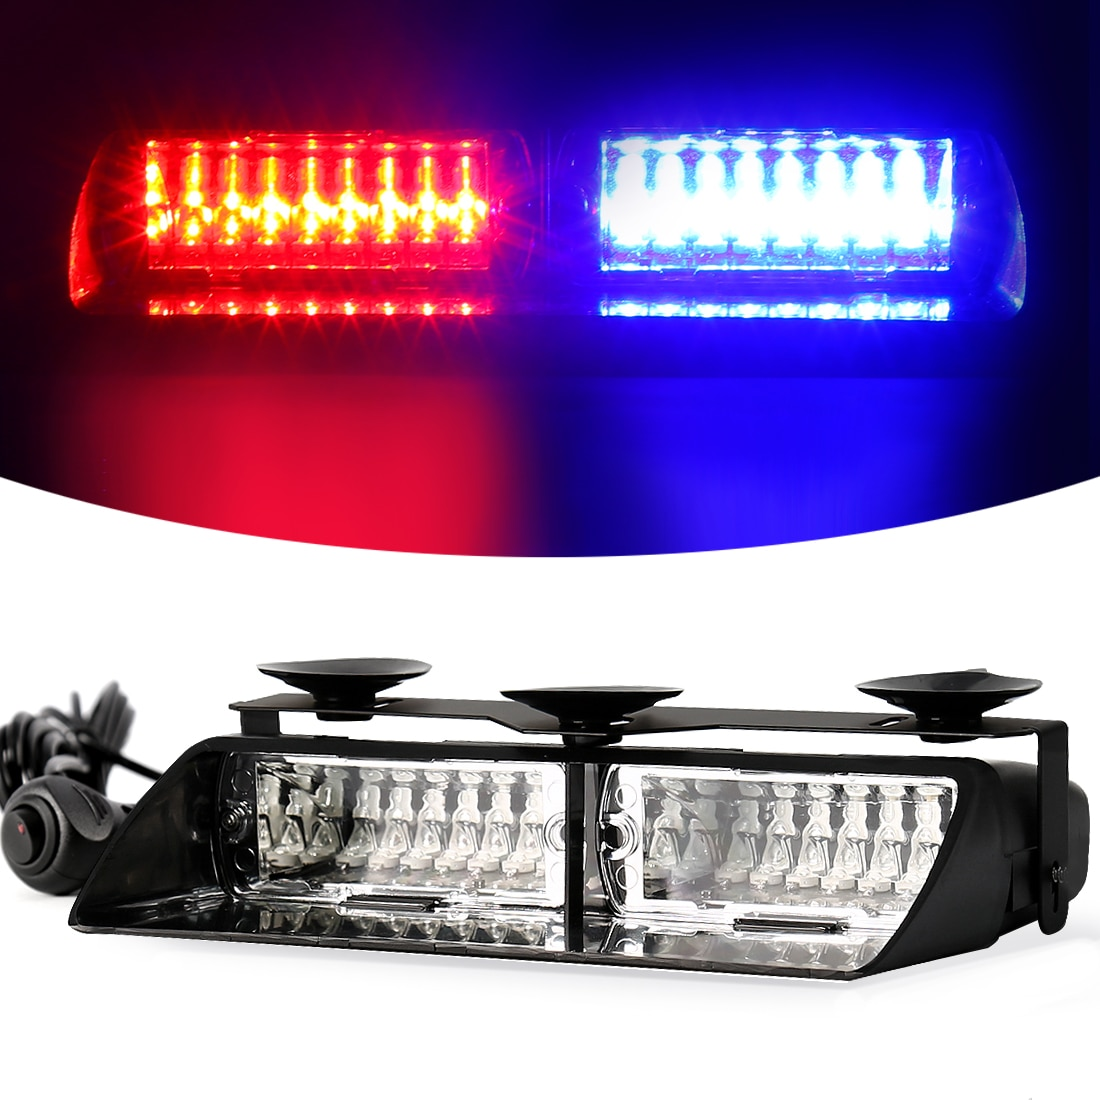 16 LED Strobe Signal Emergency Police Windshield Warning Beacon Lights Red Blue Yellow Amber White G